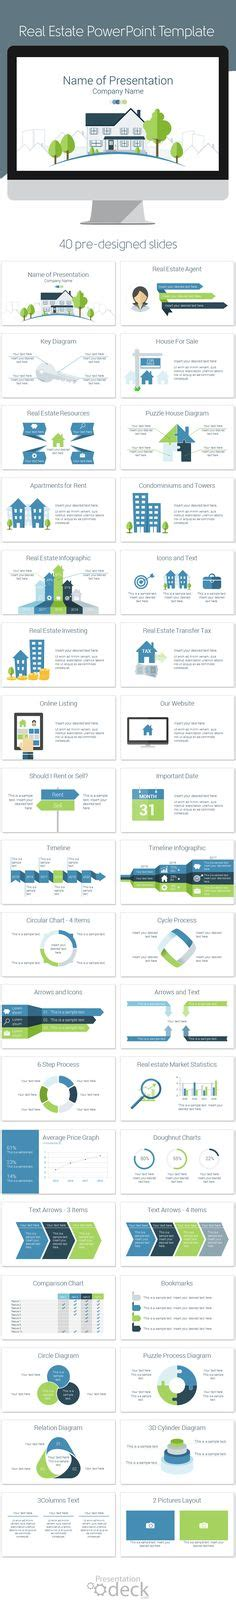 1000 Images About Finance Powerpoint Templates On Pinterest Templates Risk Management And Real Estate Investment Powerpoint Template